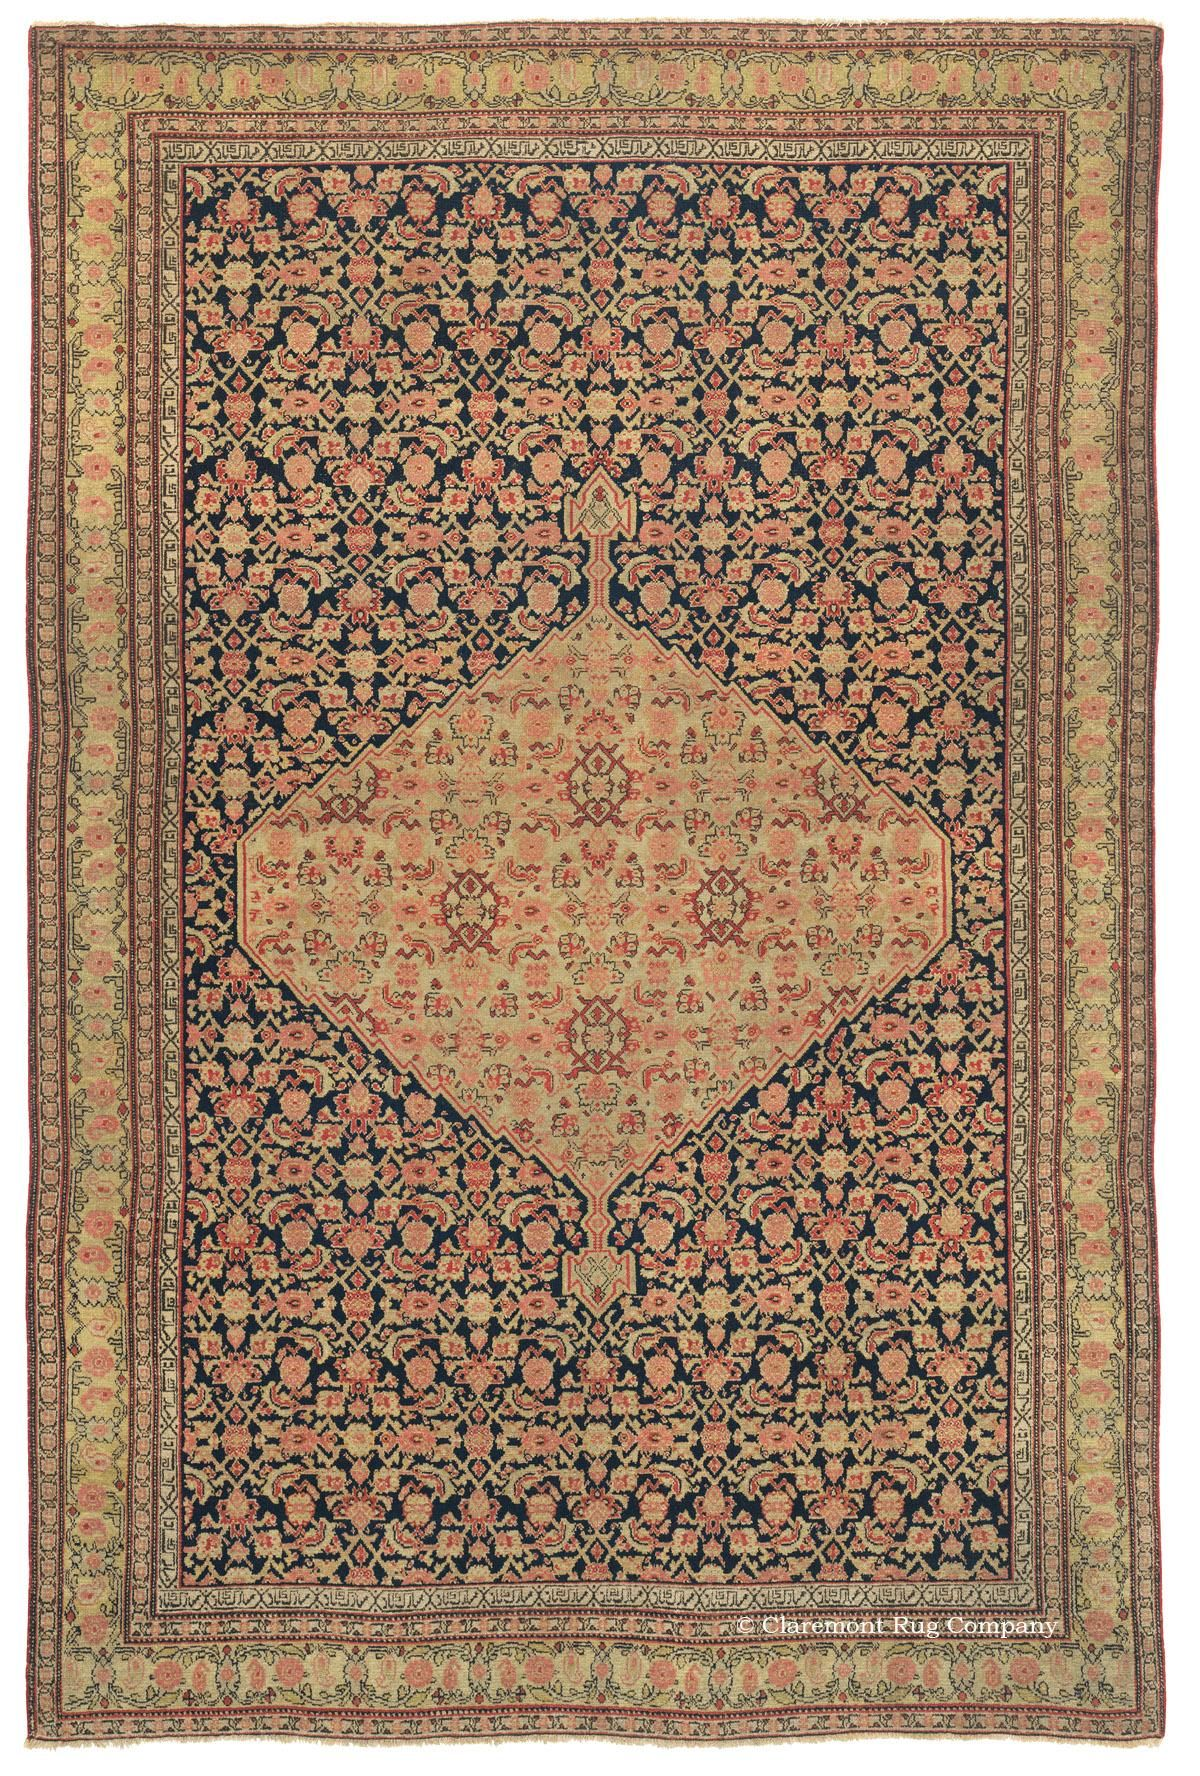 Senneh 4ft 2in X 6ft 5in Circa 1850 Exceptional In Every Way This Quintessentially Collectible Senneh Antique Per Rugs On Carpet Claremont Rug Company Rugs